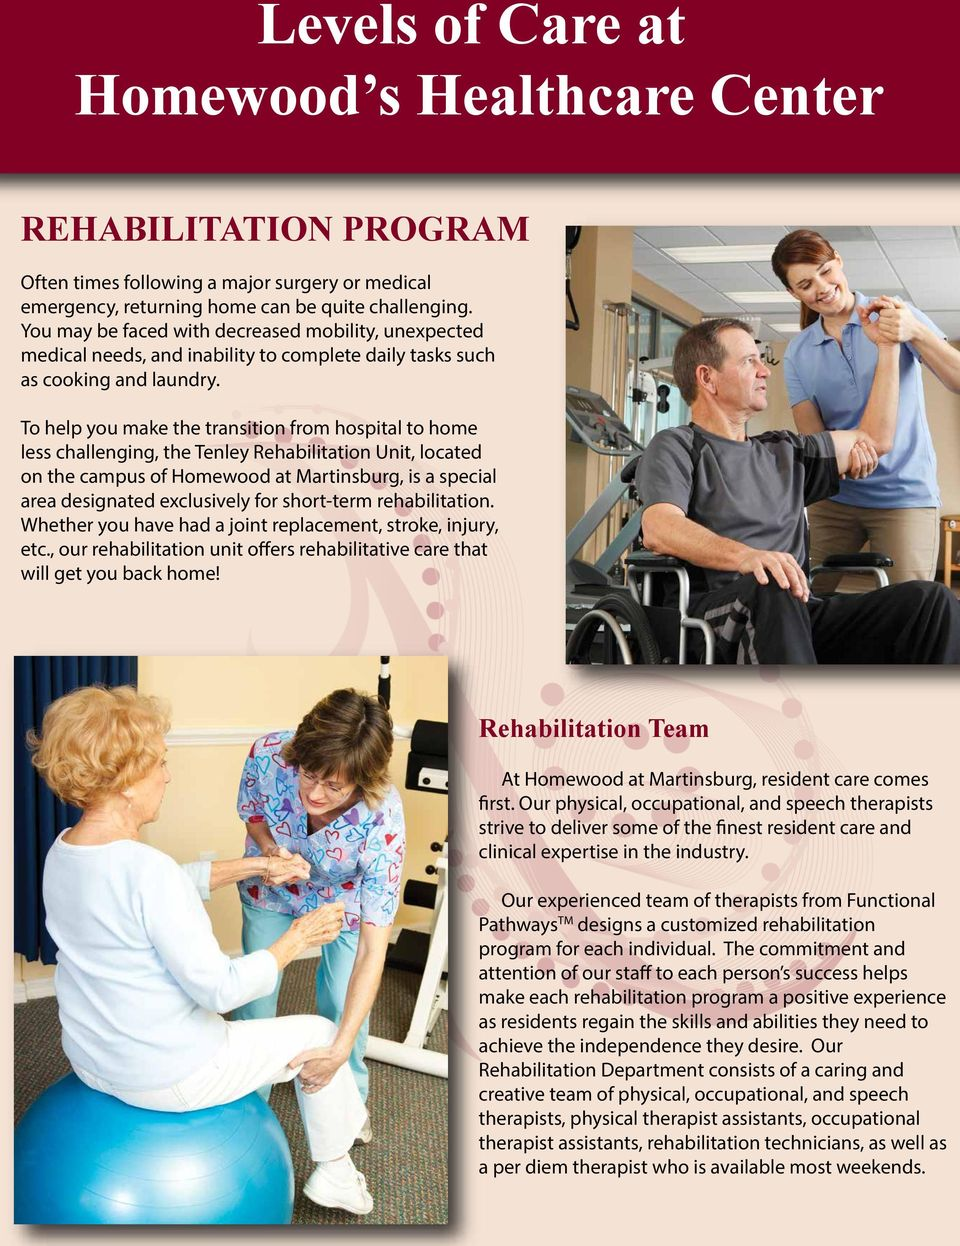 To help you make the transition from hospital to home less challenging, the Tenley Rehabilitation Unit, located on the campus of Homewood at Martinsburg, is a special area designated exclusively for